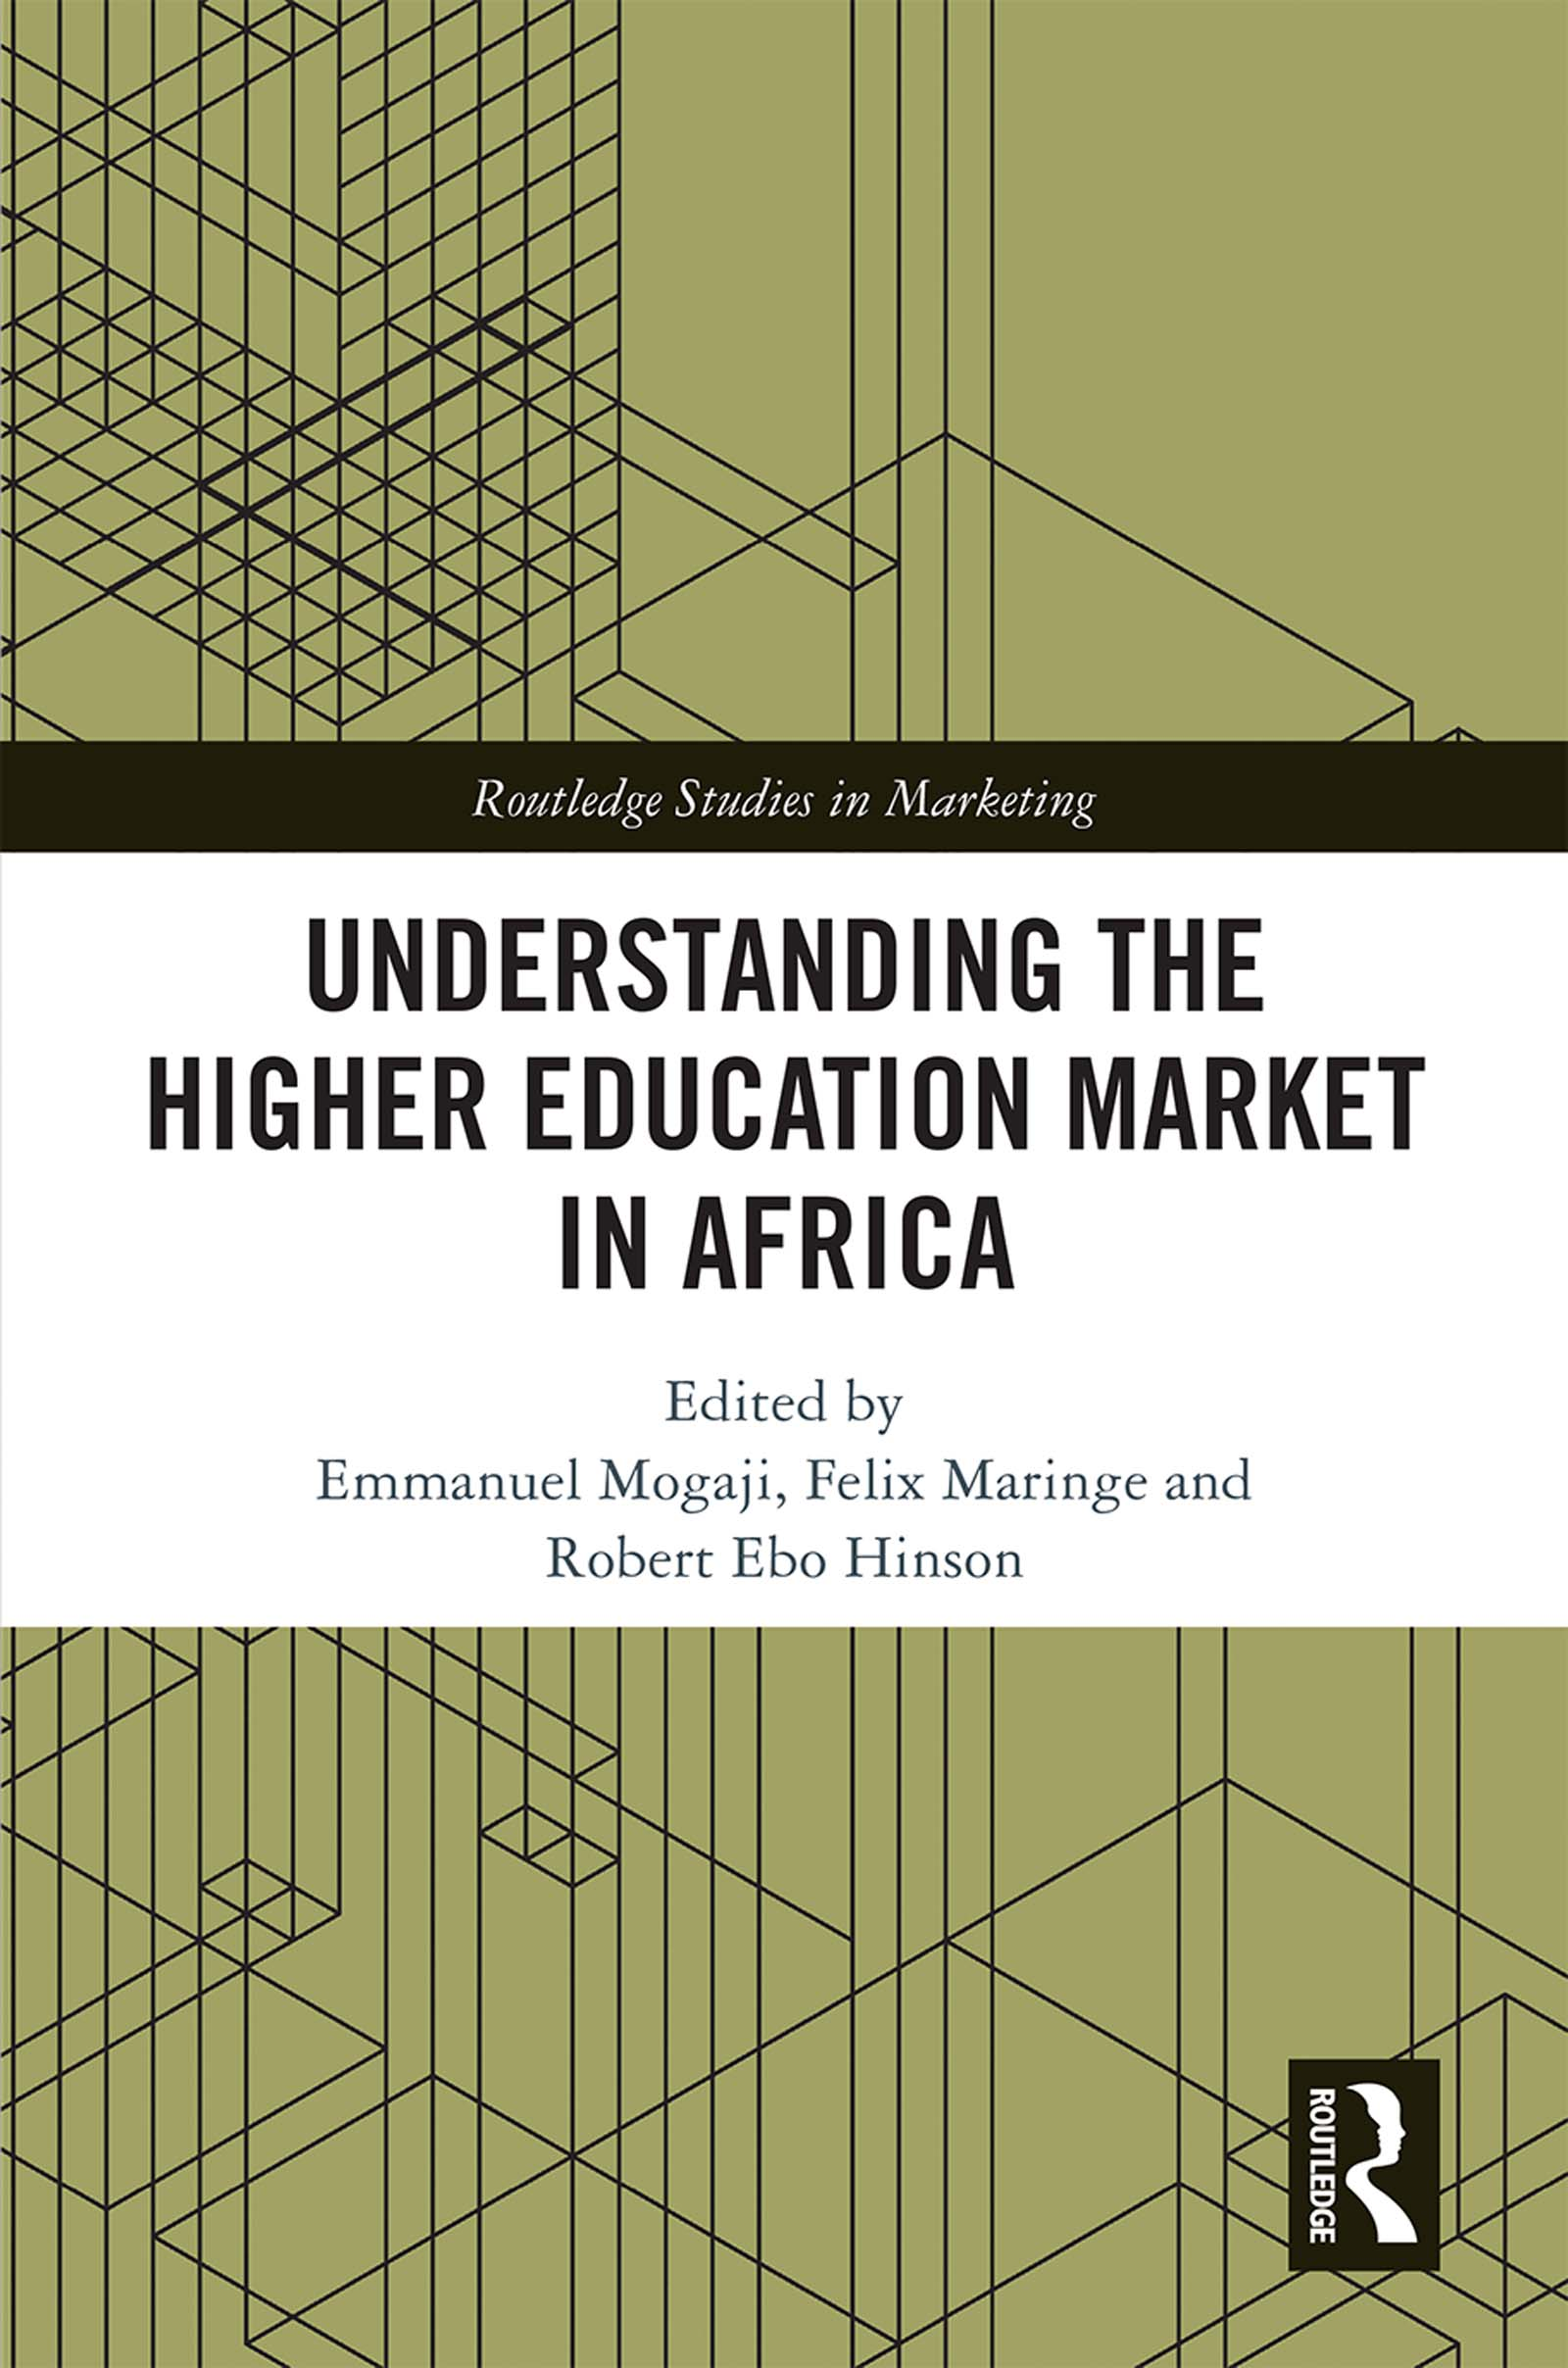 Understanding the Higher Education Market in Africa book cover